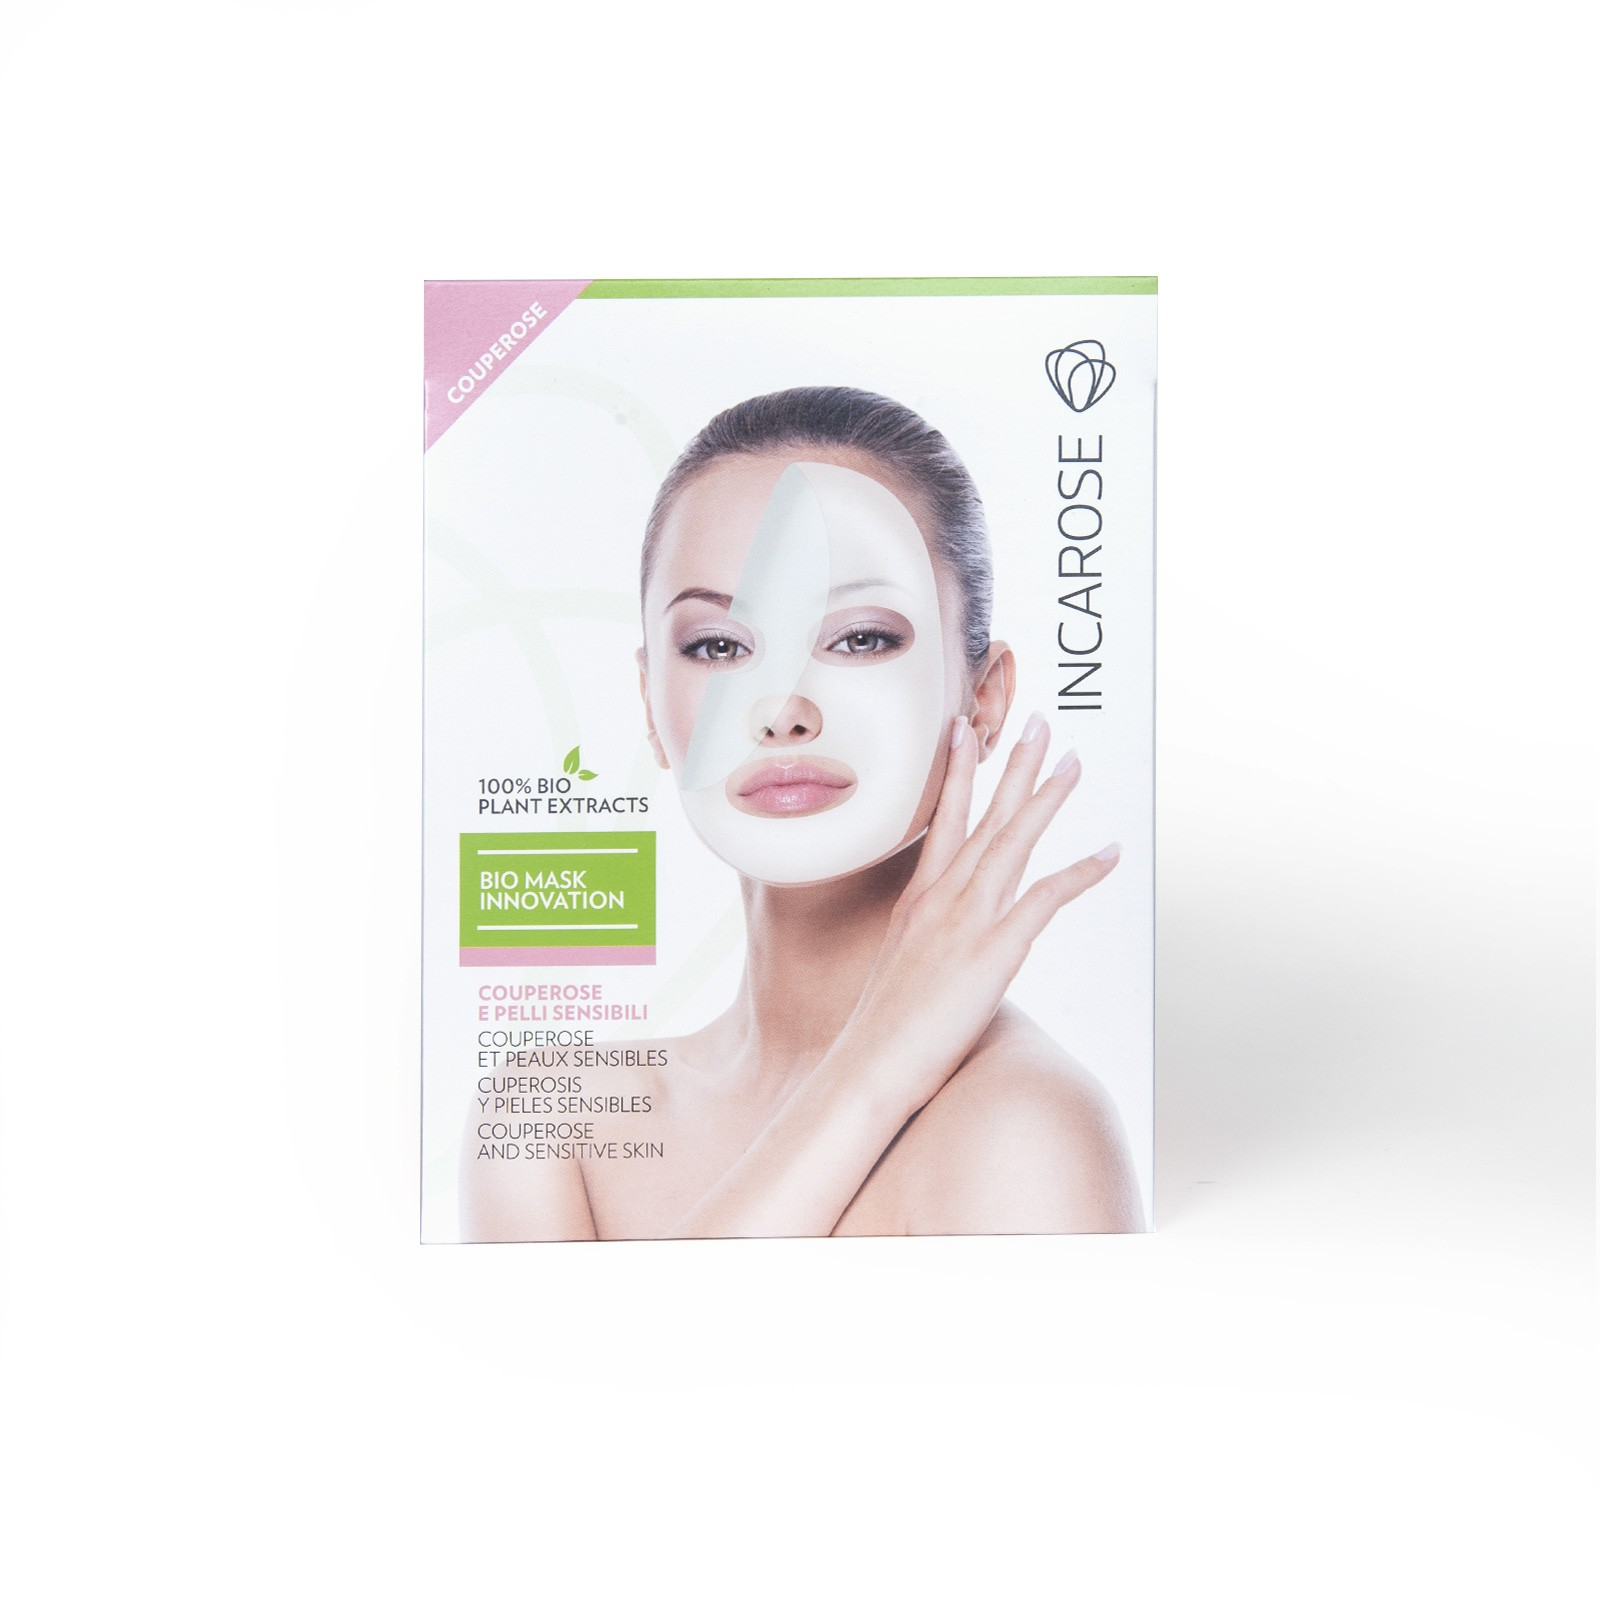 BIO MASK INNOVATION - coopers and sensitive skin